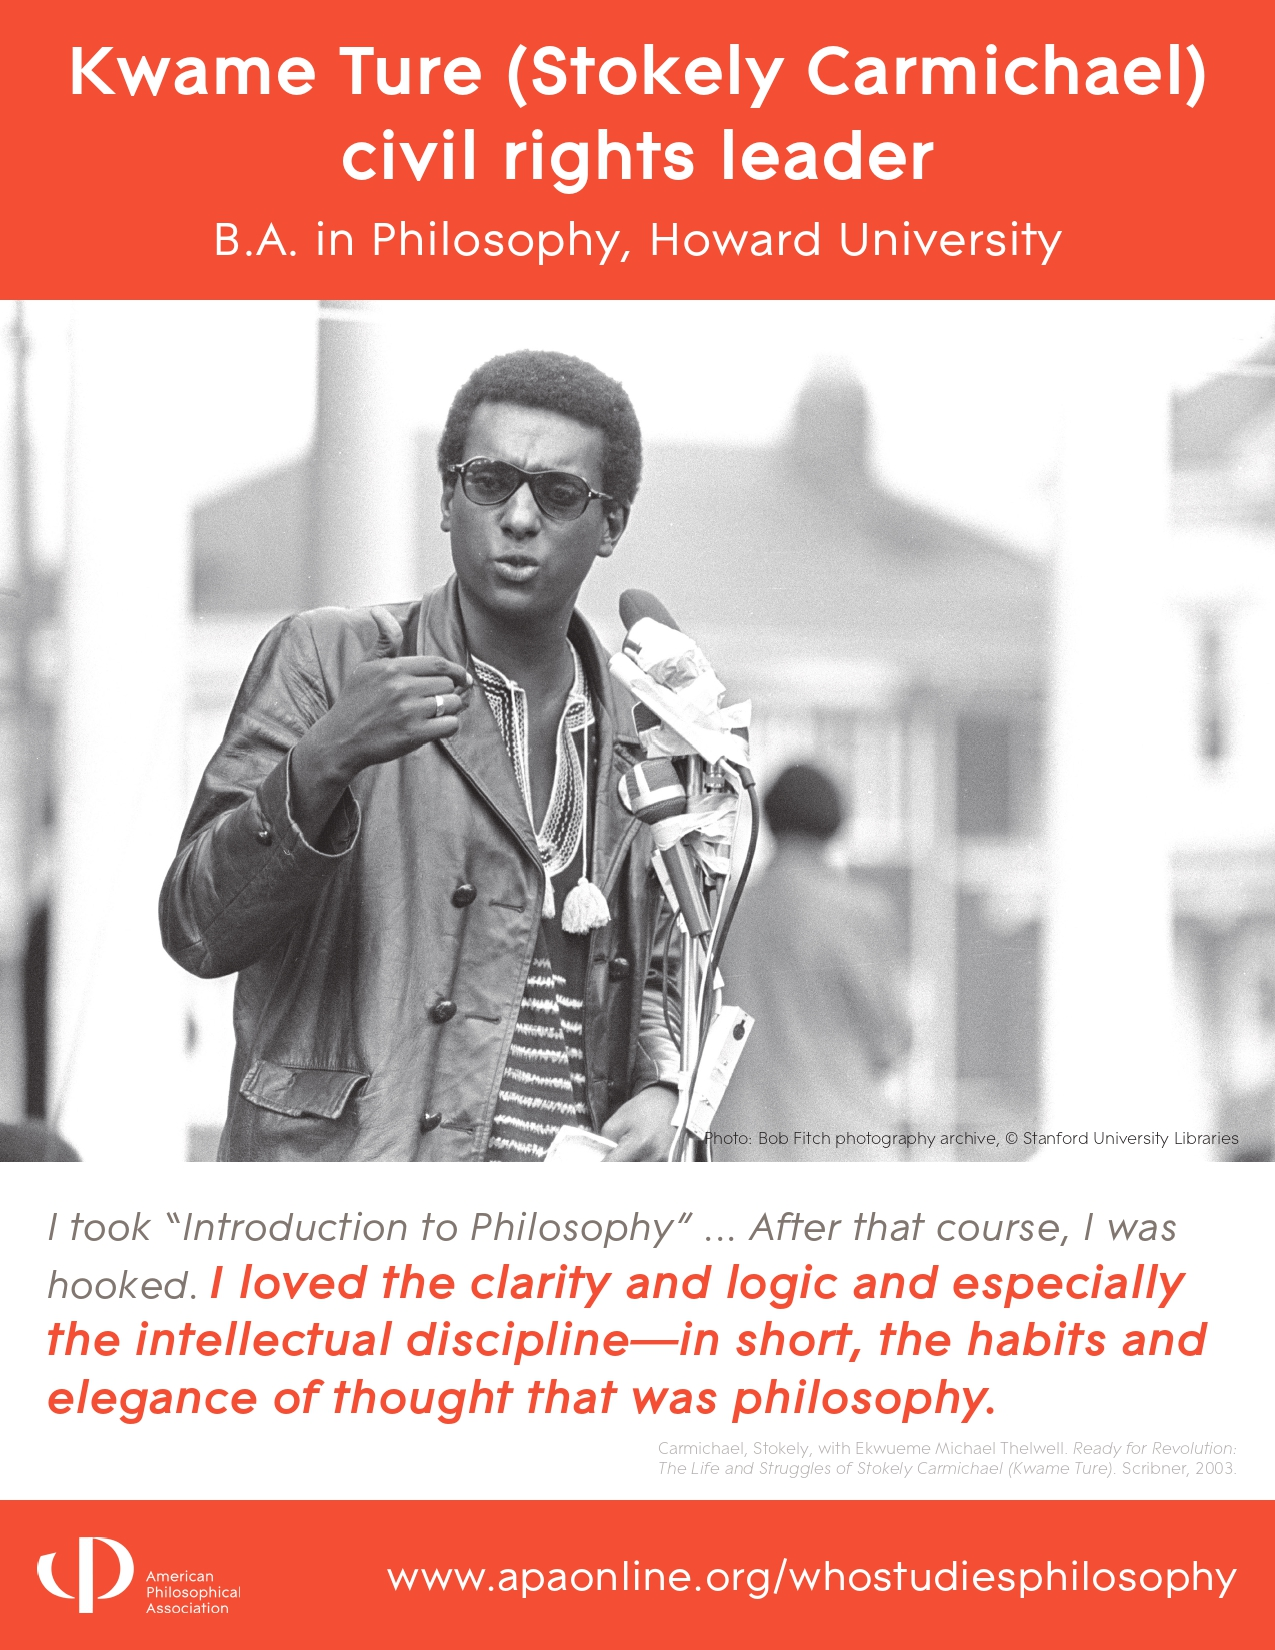 Image- Kwame Ture: Civil Rights Leader